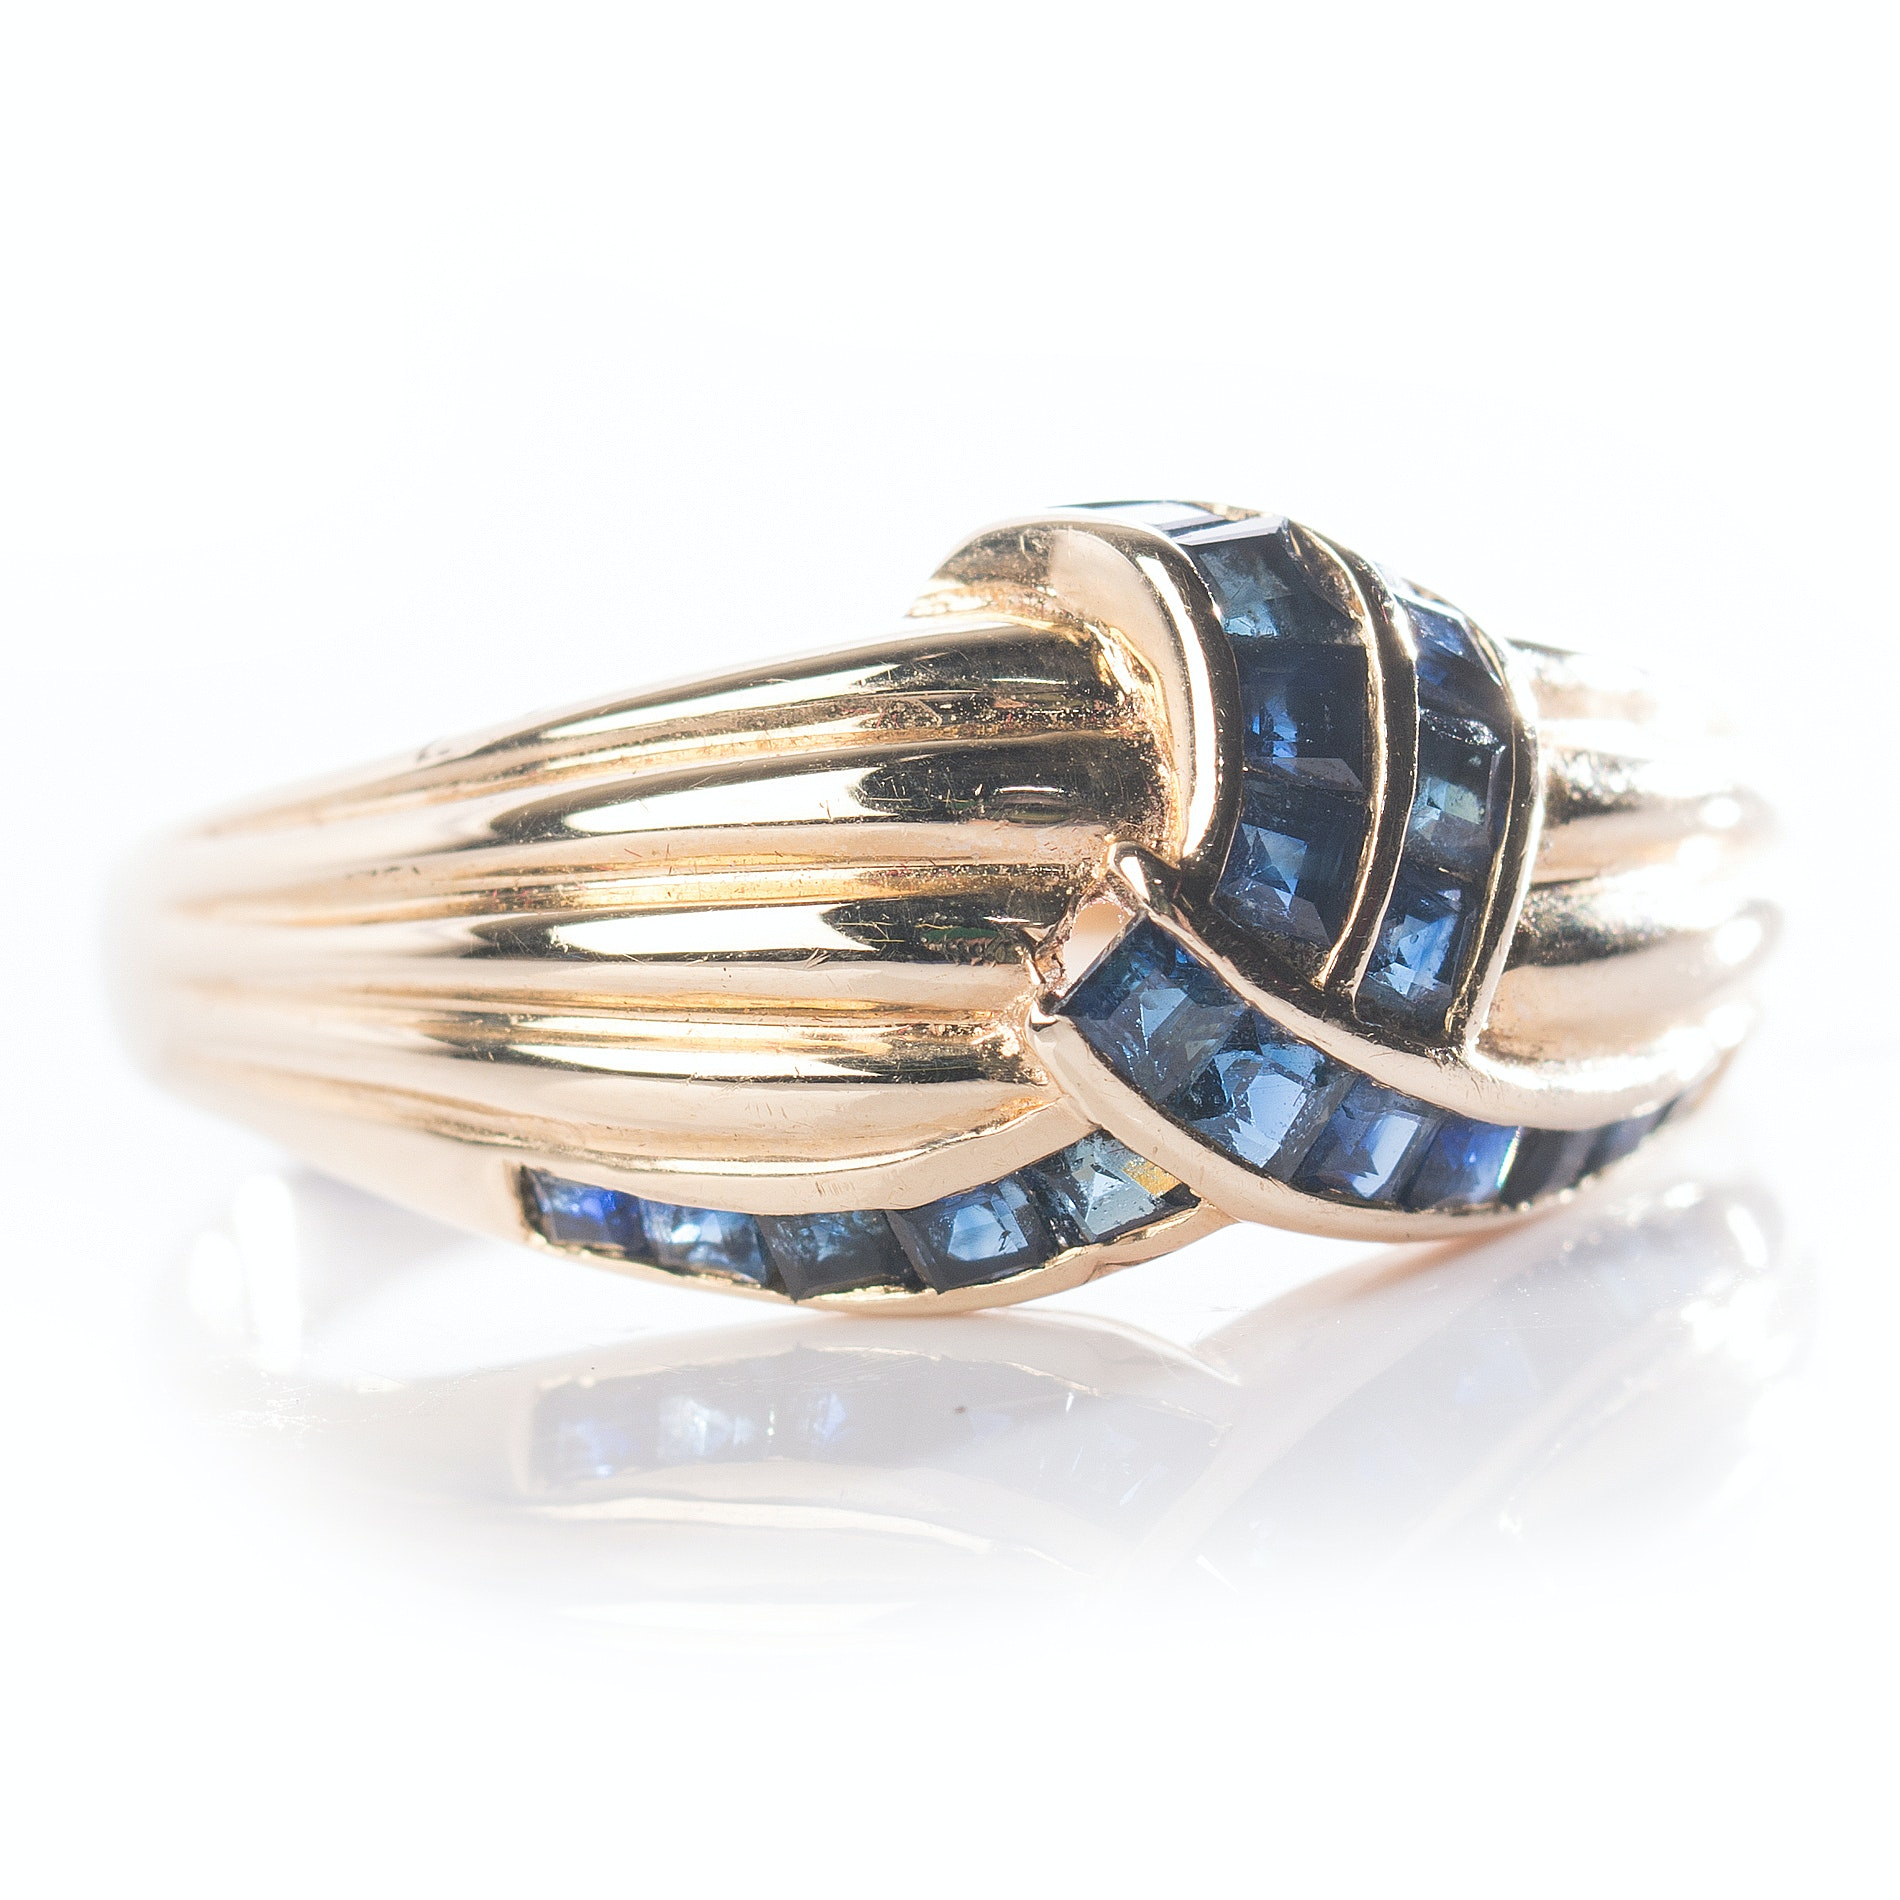 14K Yellow Gold Channel Set Sapphire Ring